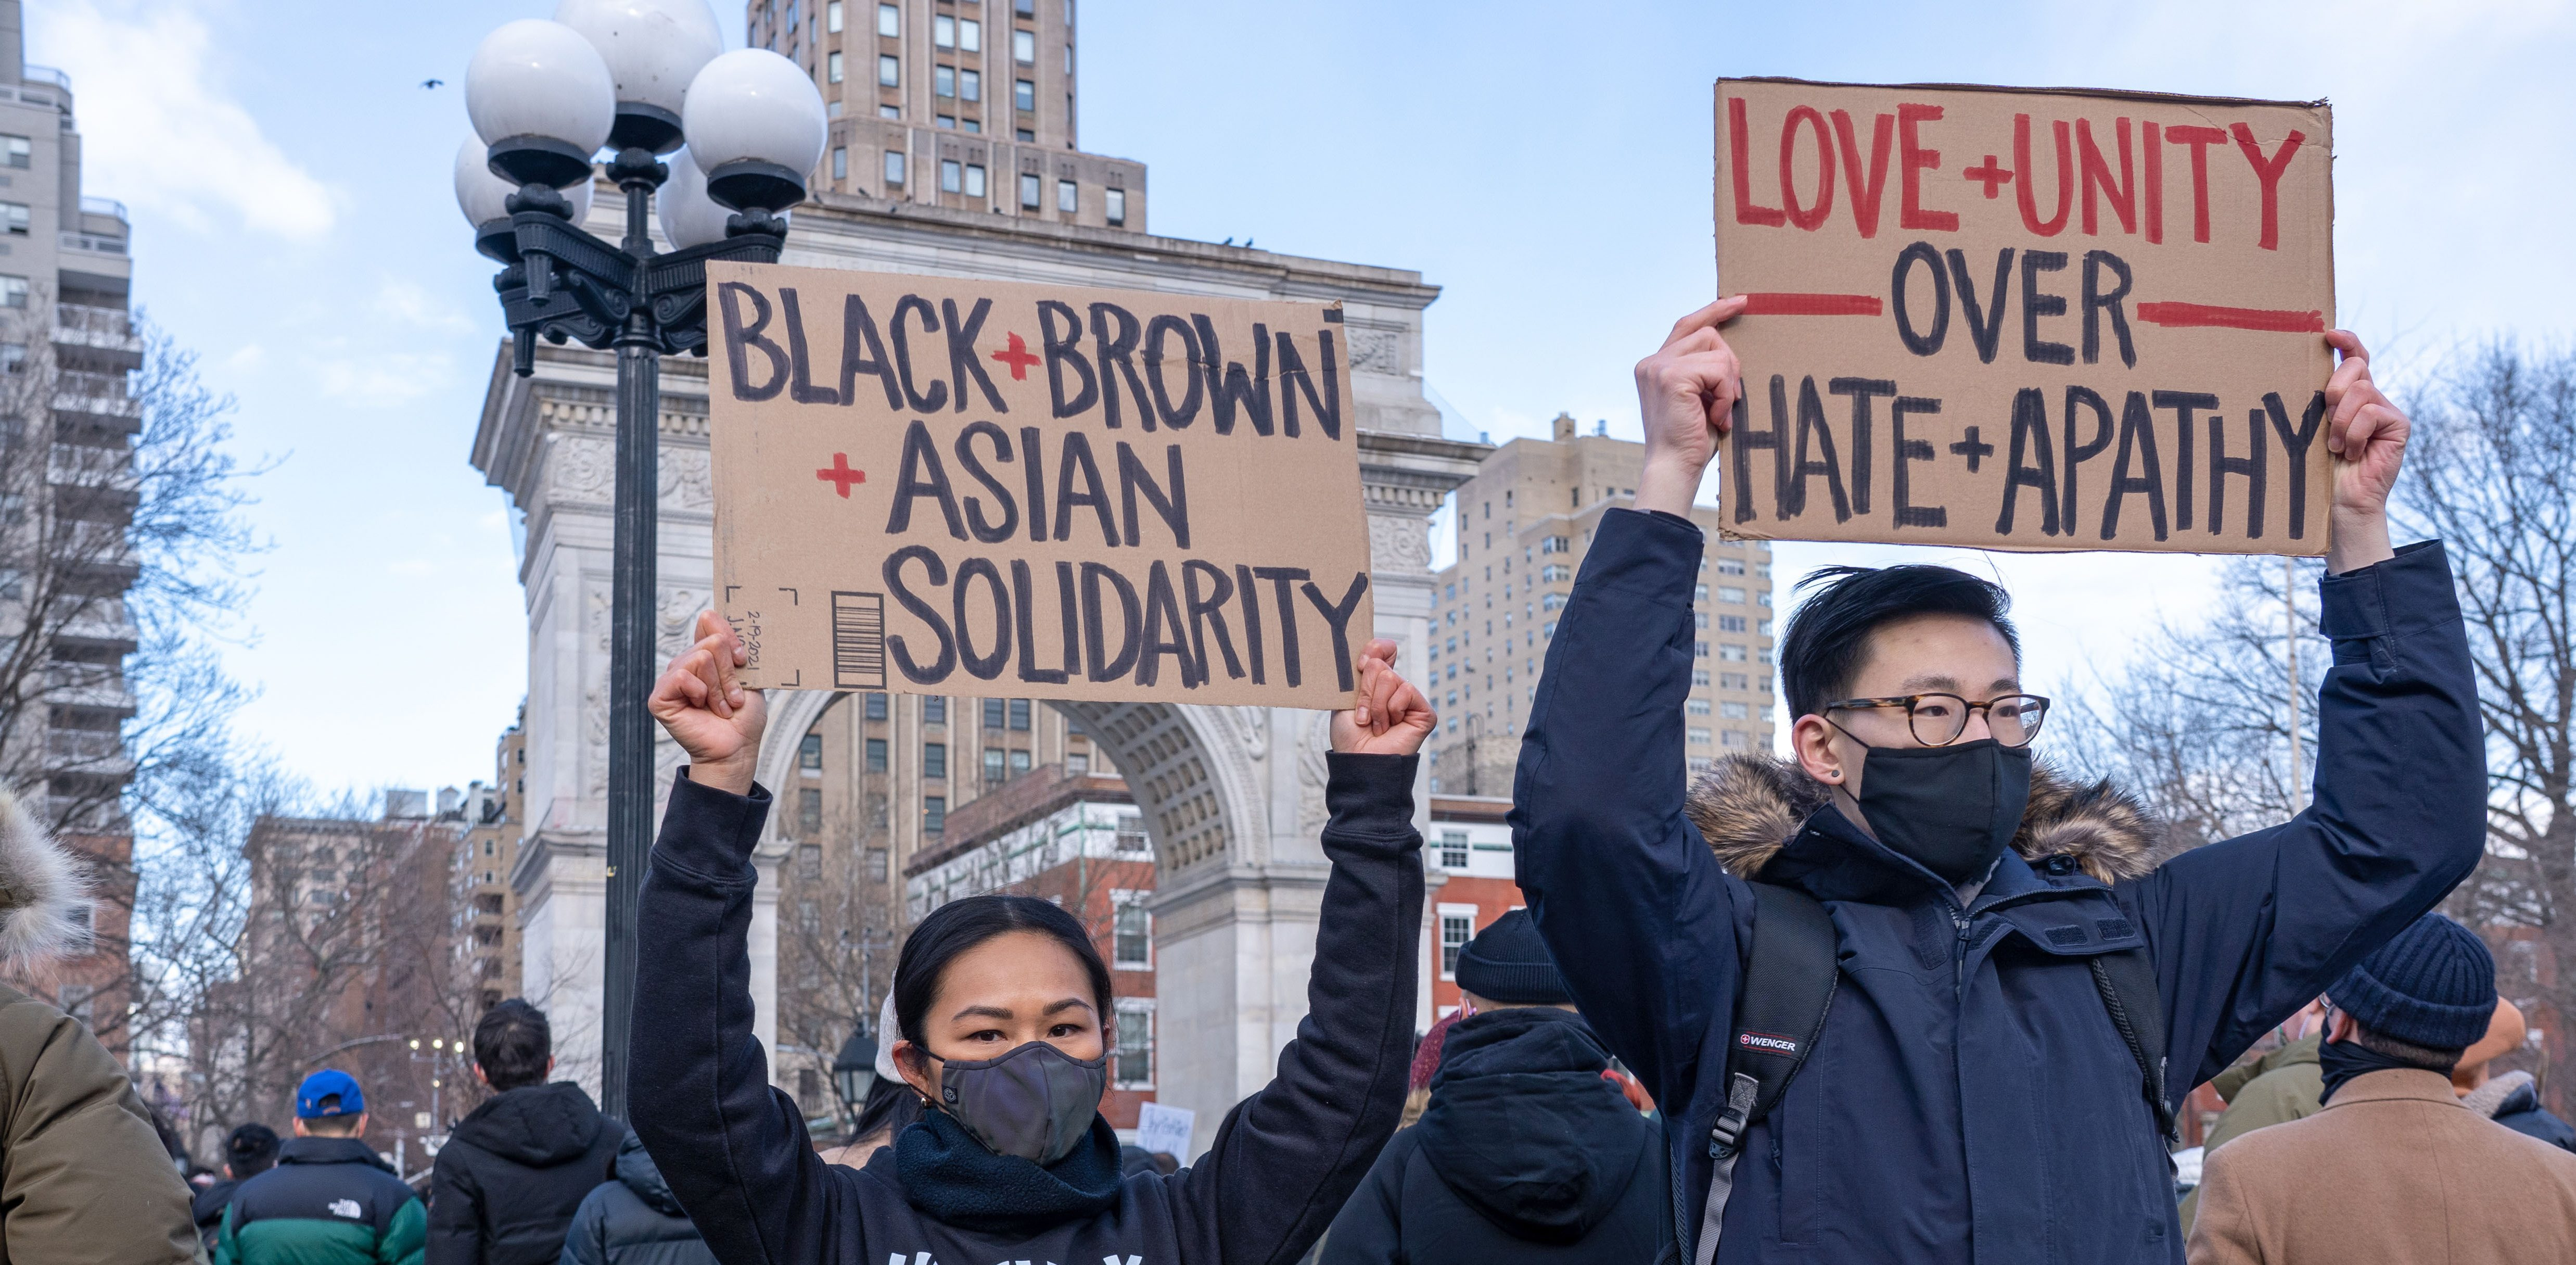 www.brookings.edu: Why the trope of Black-Asian conflict in the face of anti-Asian violence dismisses solidarity